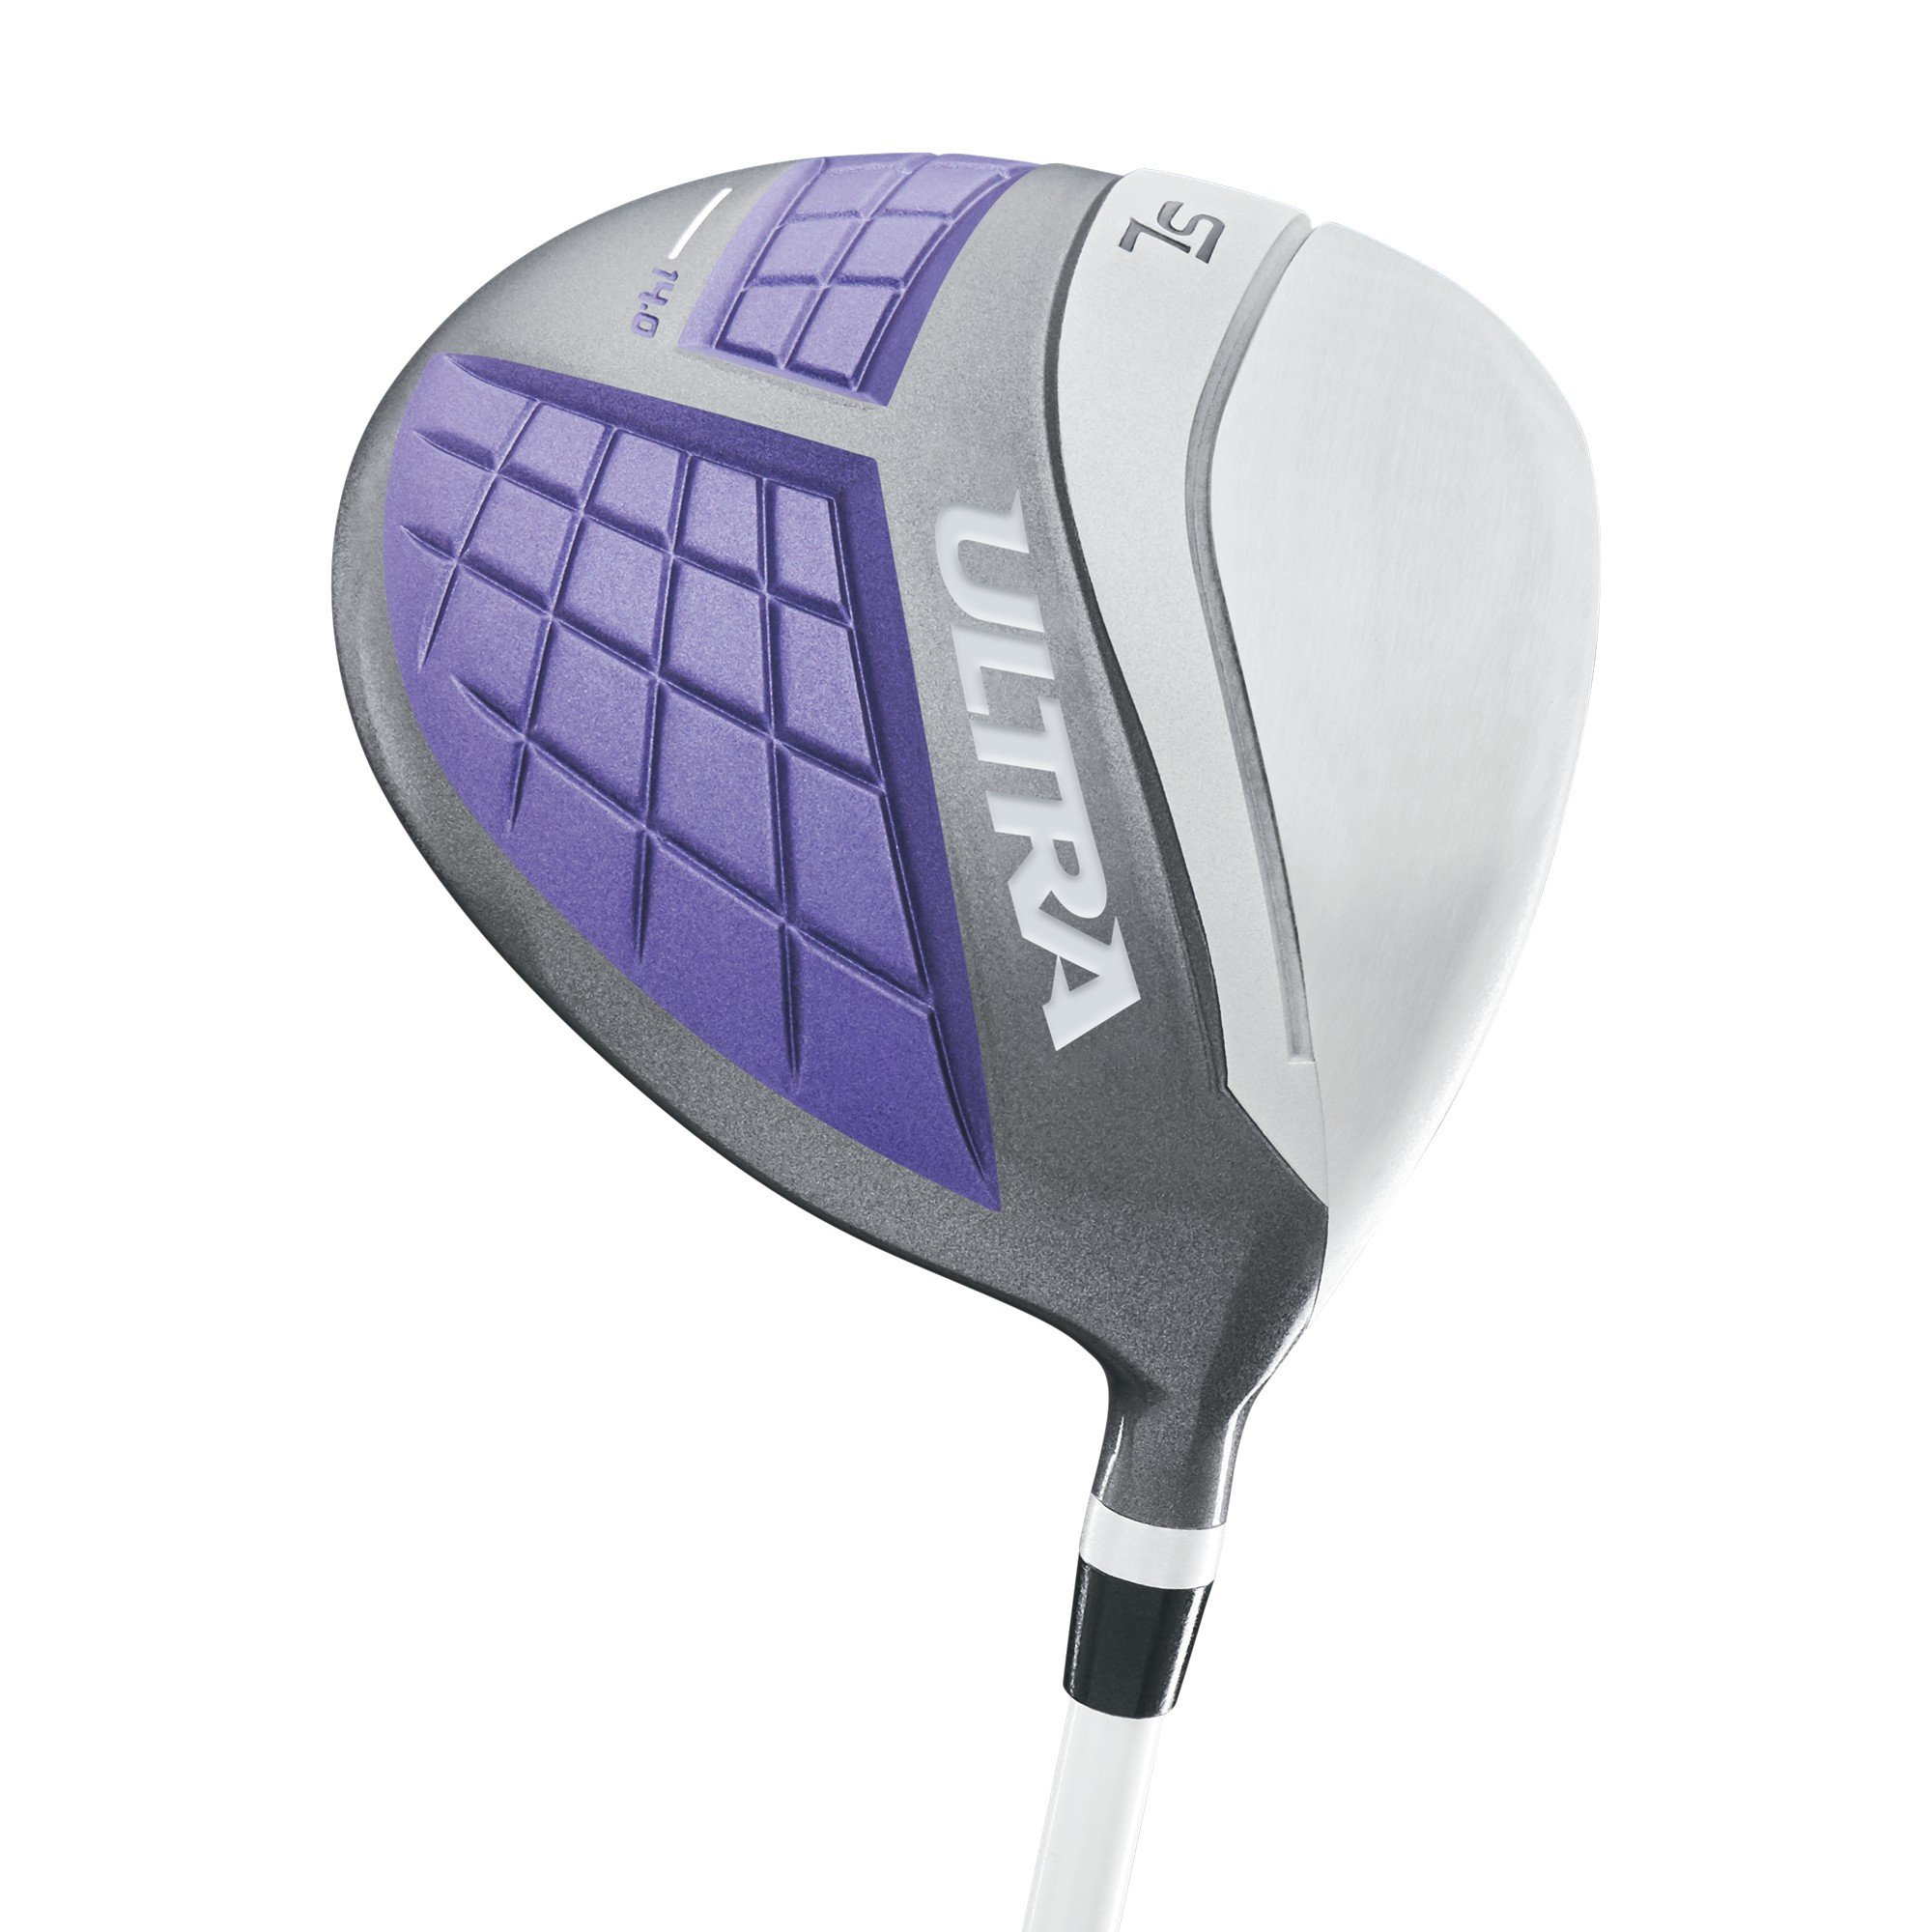 Wilson Golf Women's Ultra Package Set, Right Hand, White by Wilson Golf (Image #2)